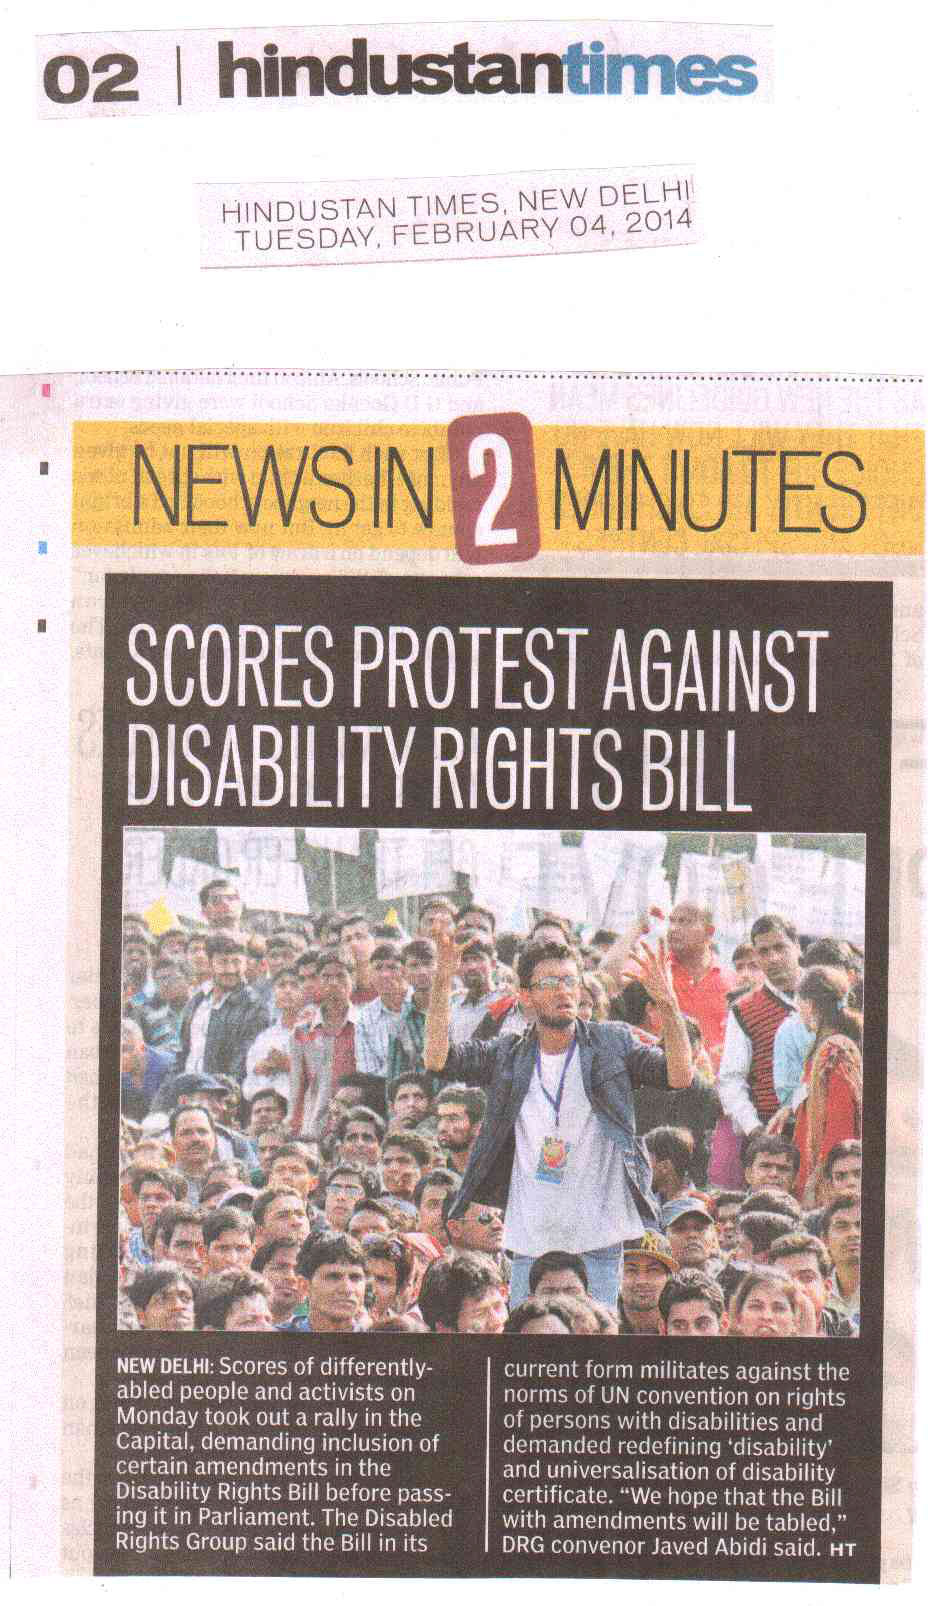 Scores Protest Against Disabilitiy Rights Bill